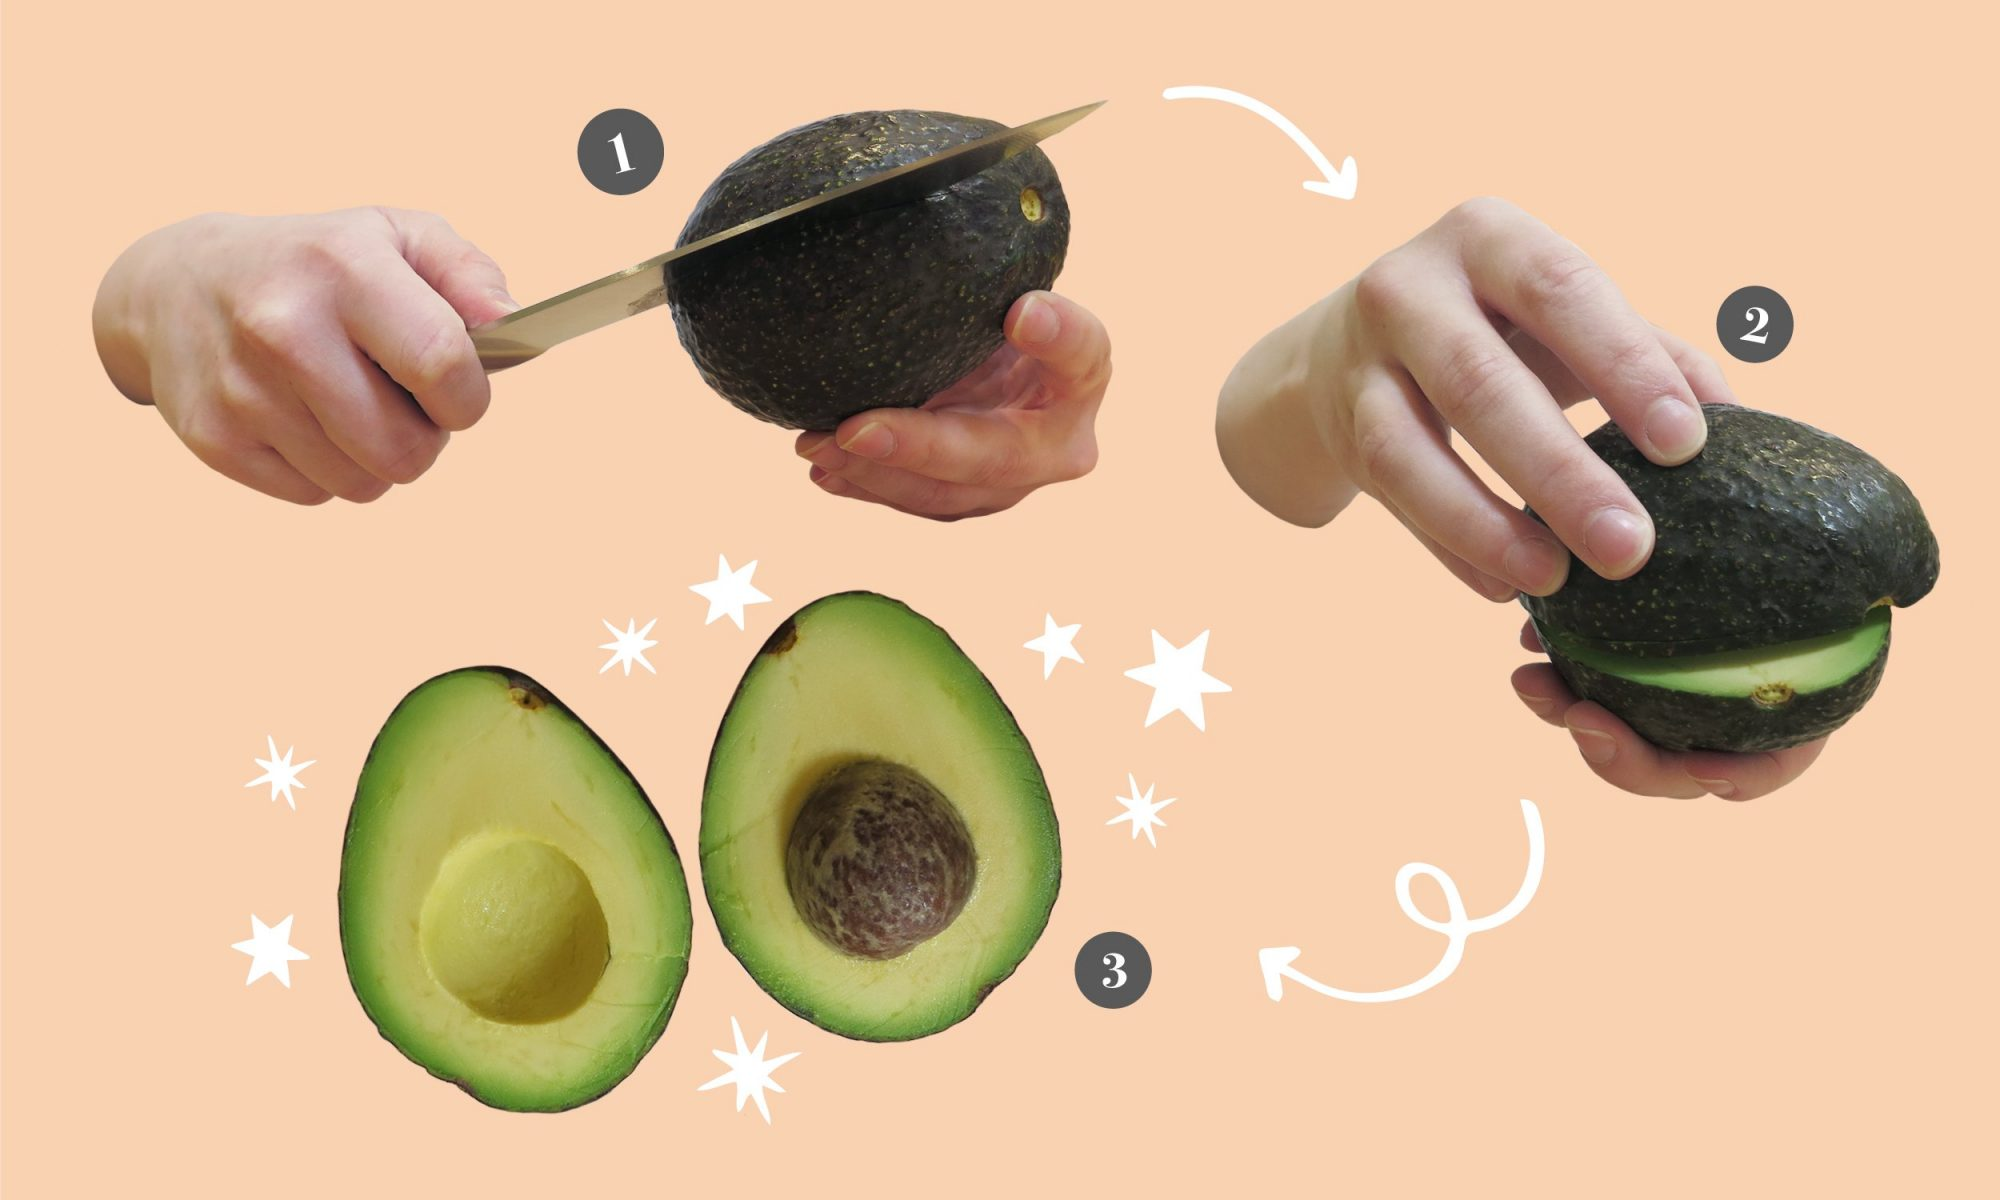 Cut Avocados Safely with This Step-by-Step Guide